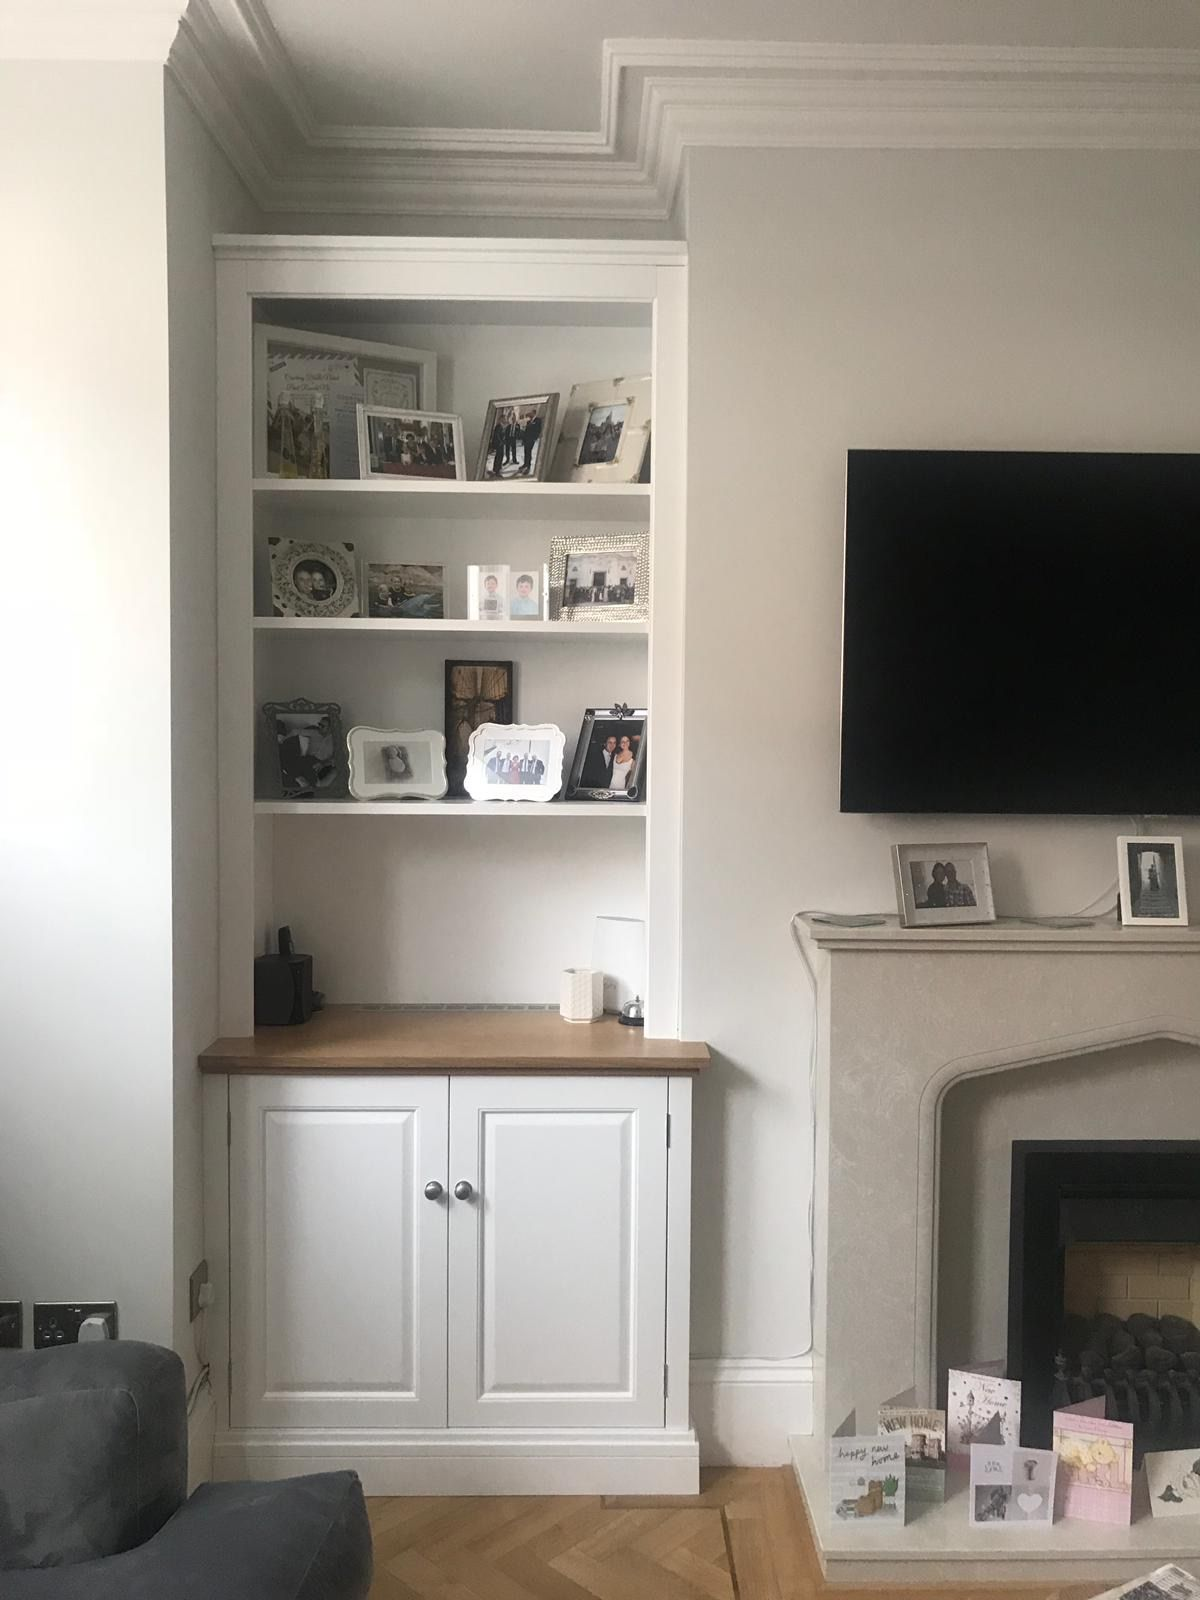 Fitted Furniture Alcove Storage Units Alcove Storage Living Room Alcove Ideas Living Room Built In Cupboards Living Room #side #cabinets #living #room